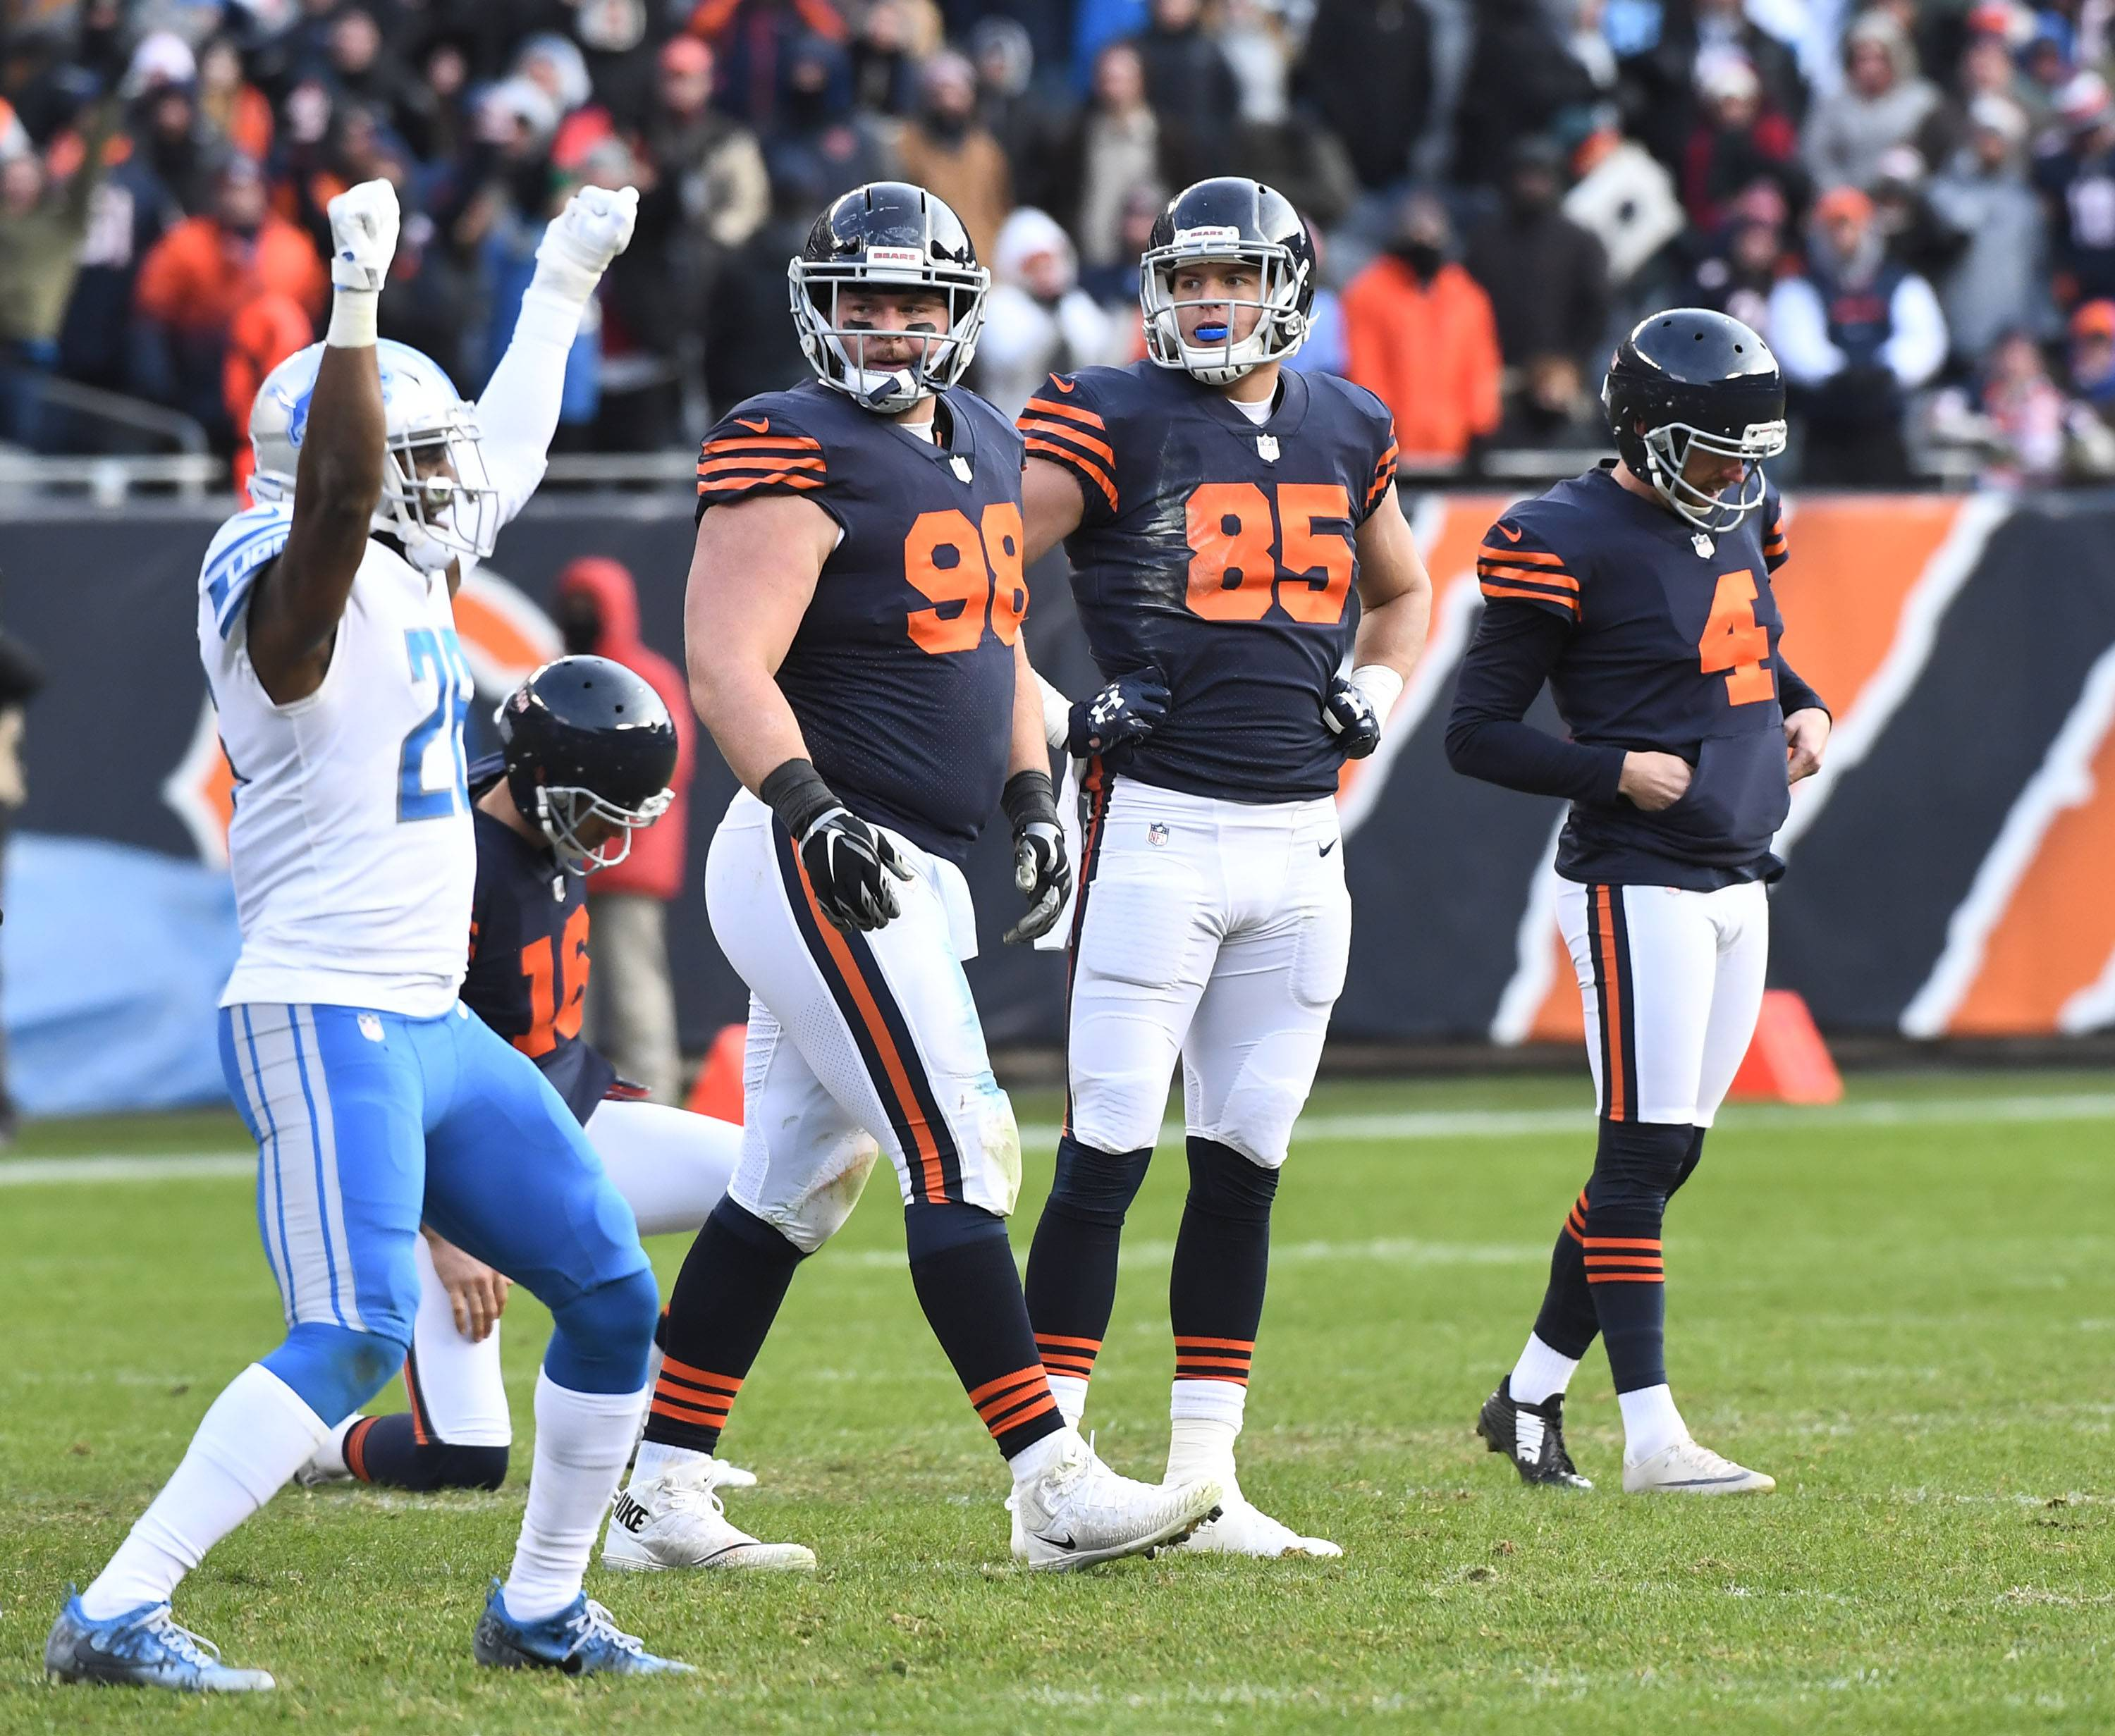 Chicago Bears kicker Connor Barth bows his head as teammates Chicago Bears Mitch Unrein and Daniel Brown watch Detroit Lions strong safety Don Carey celebrate the missed field goal with only seconds left in regulation Sunday at Soldier Field in Chicago.